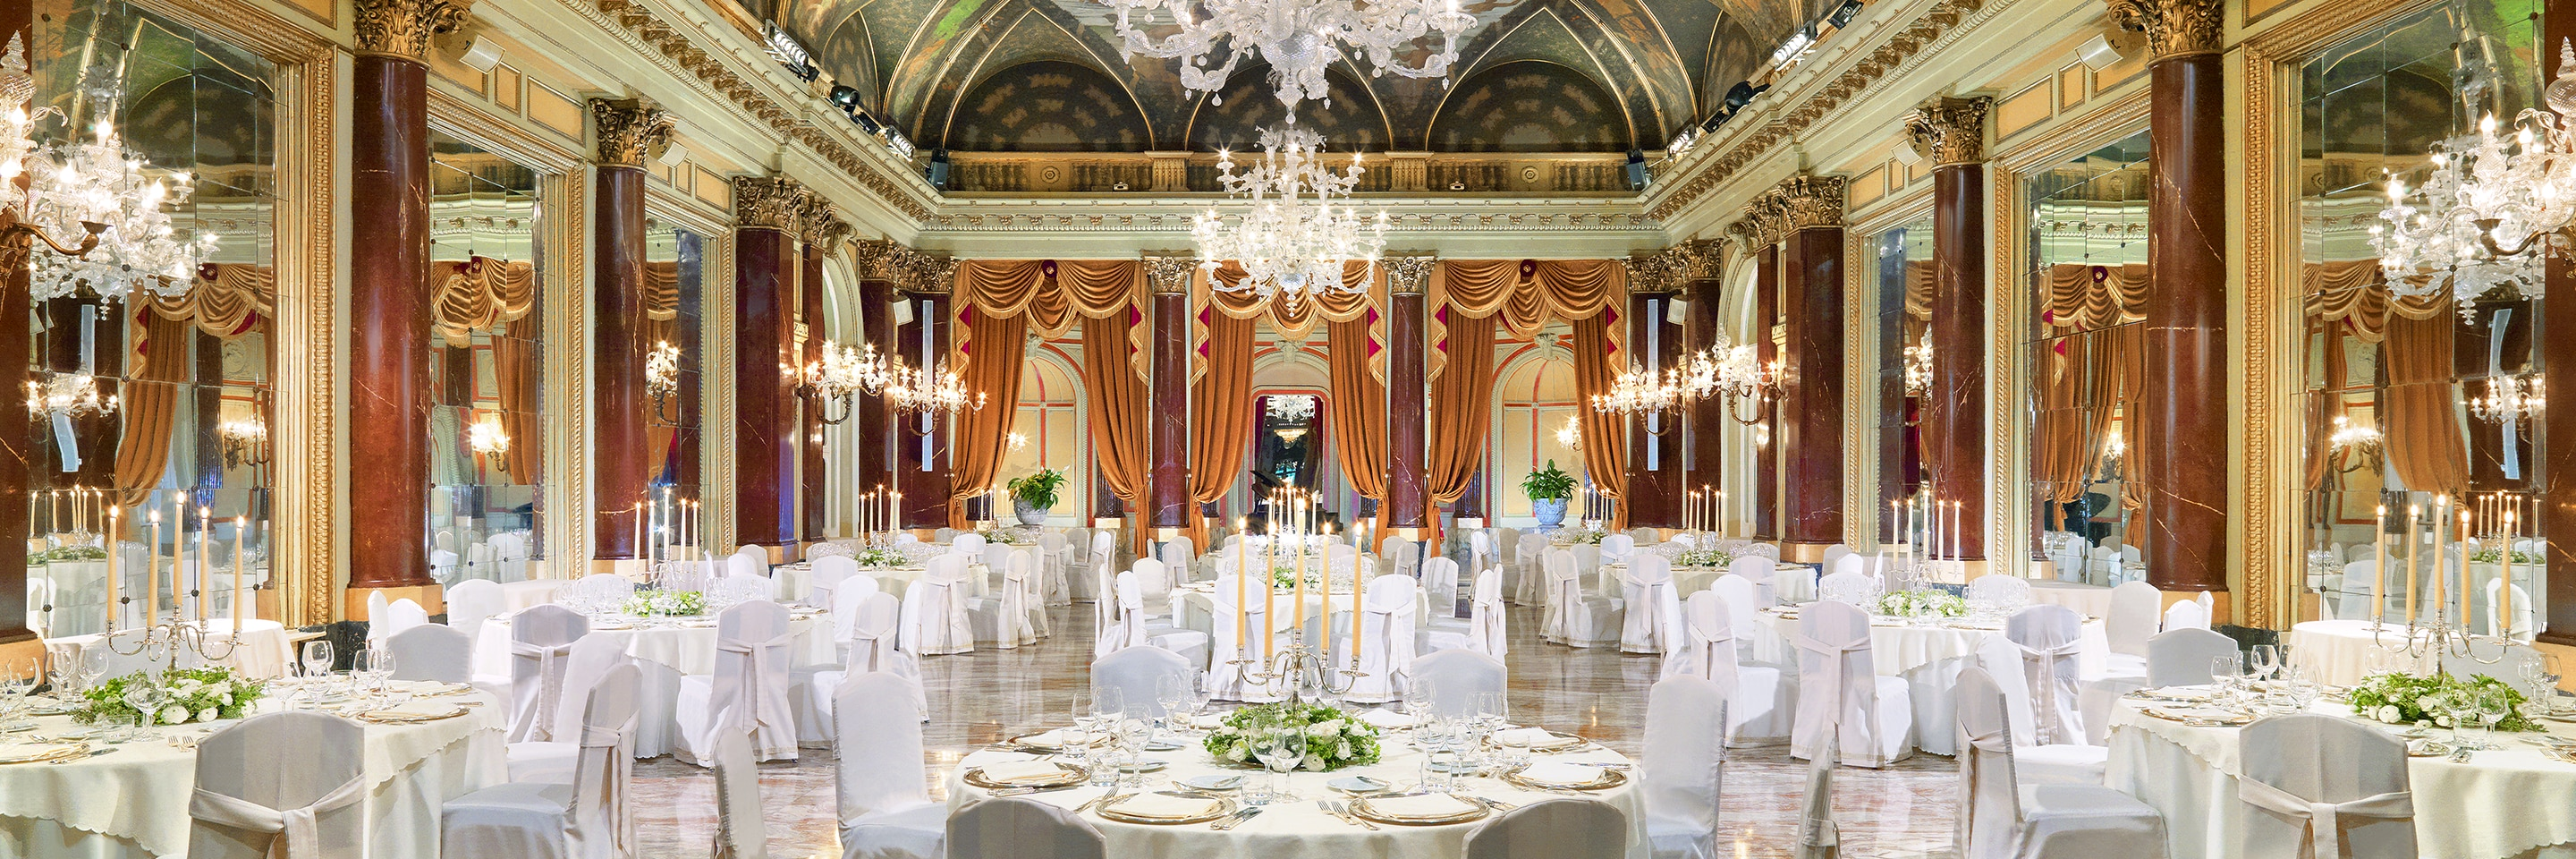 Opulent ballroom with lavishly set round dining tables